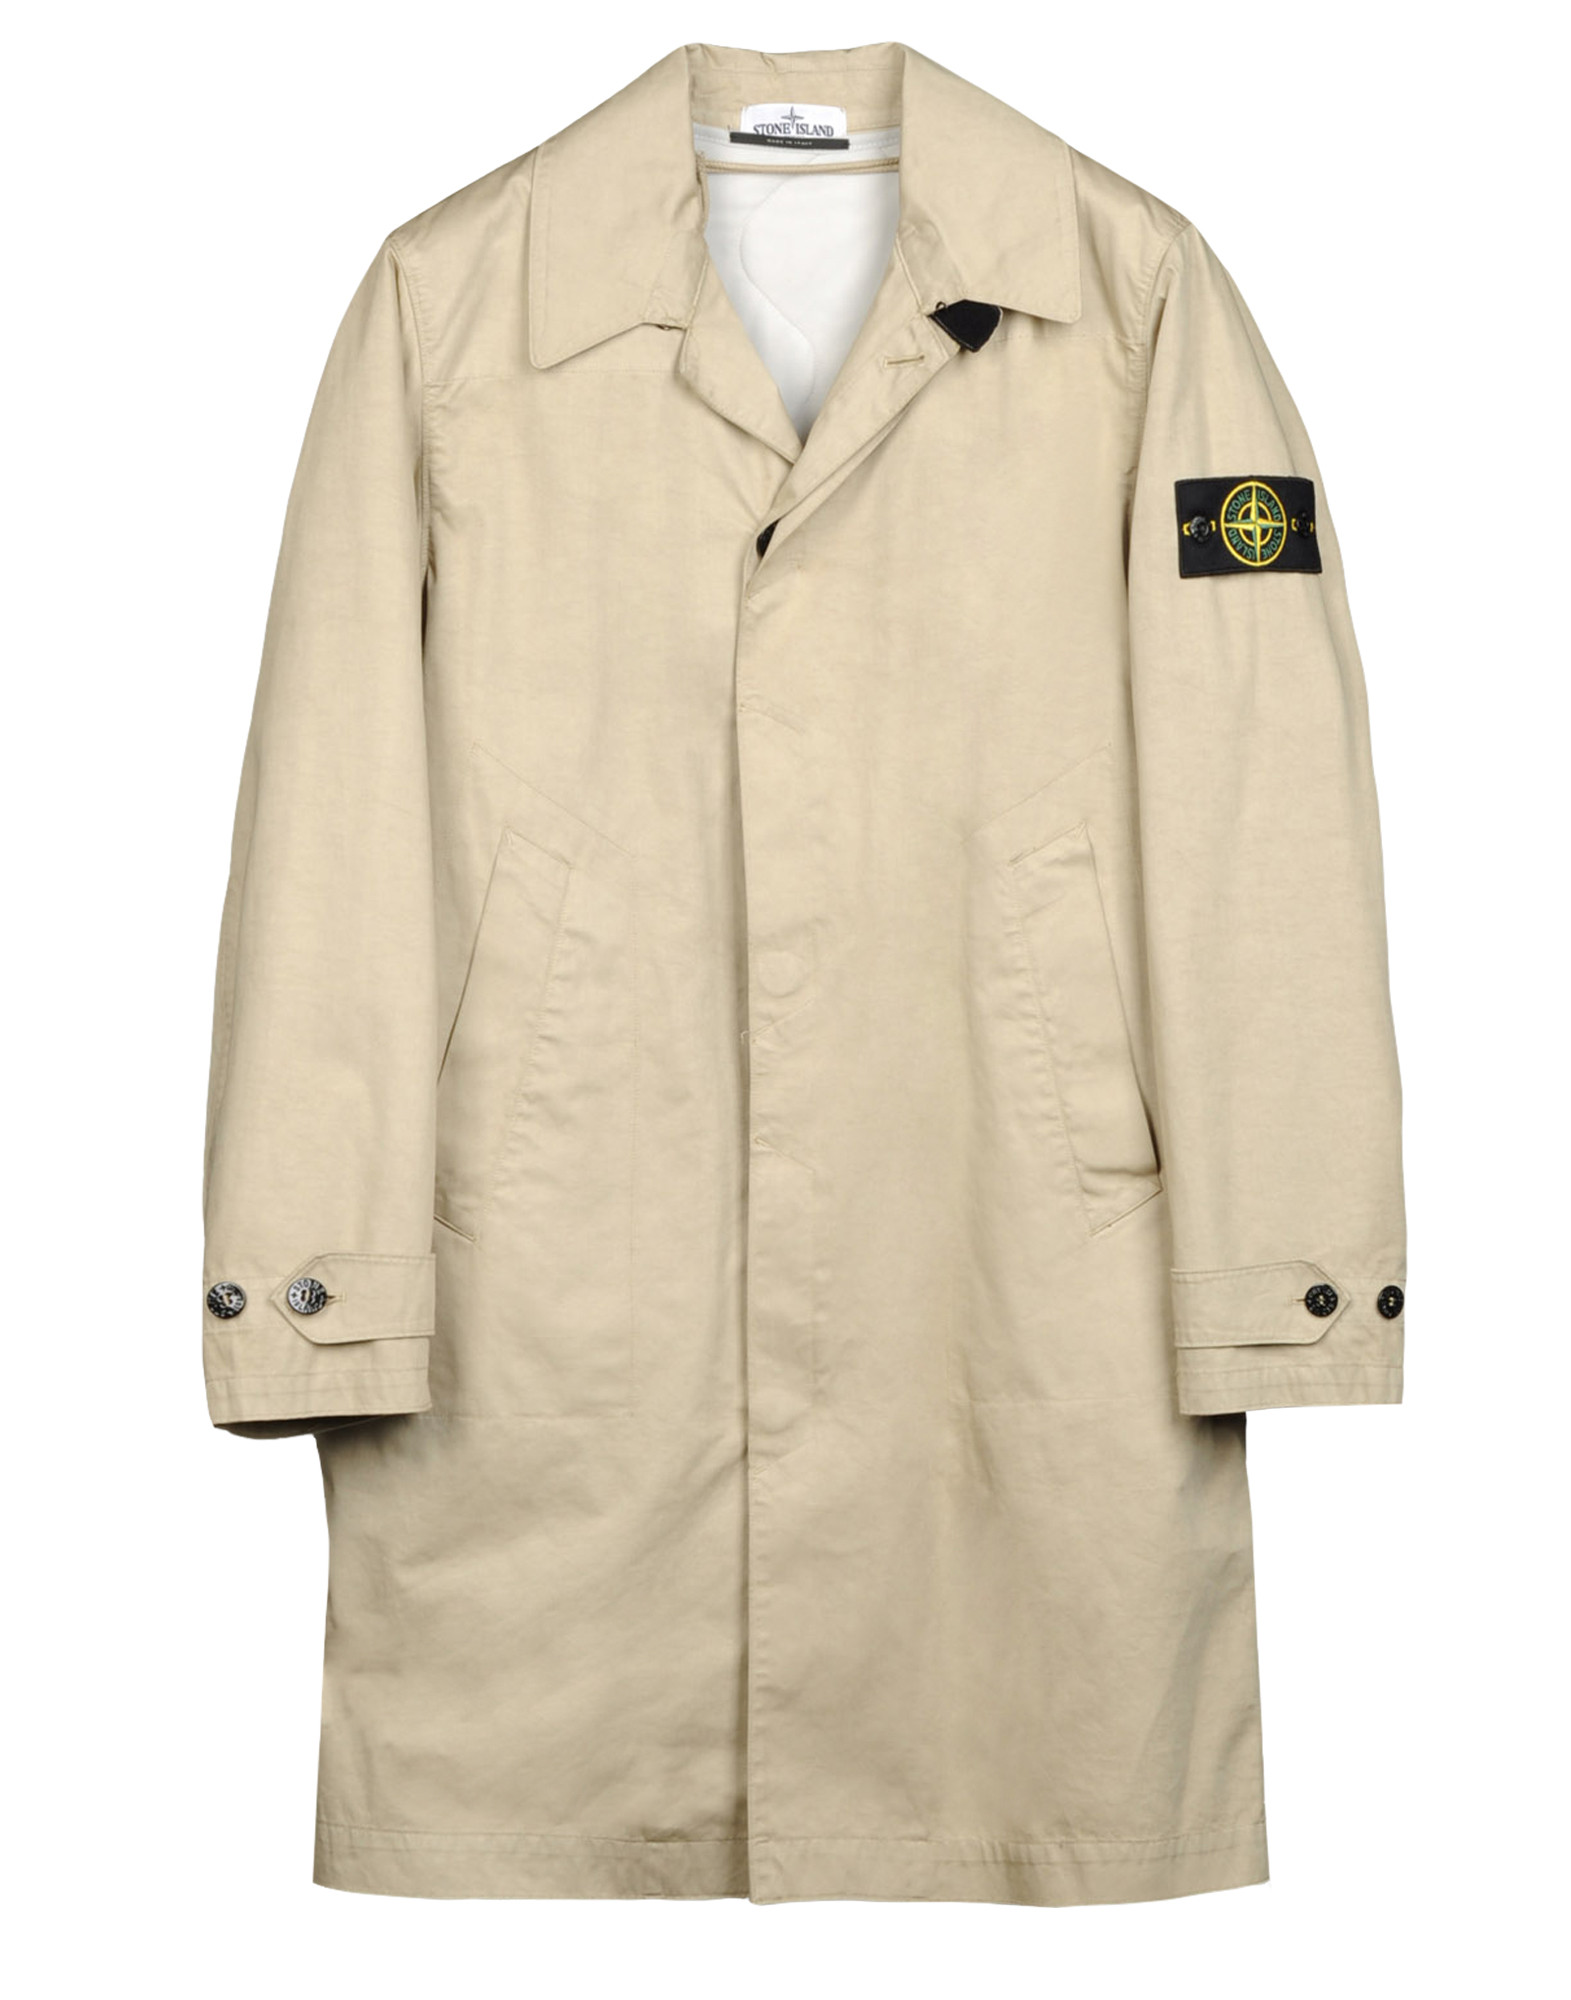 more on the history of Stone Island peep An Up-To-Date Stone Island ...